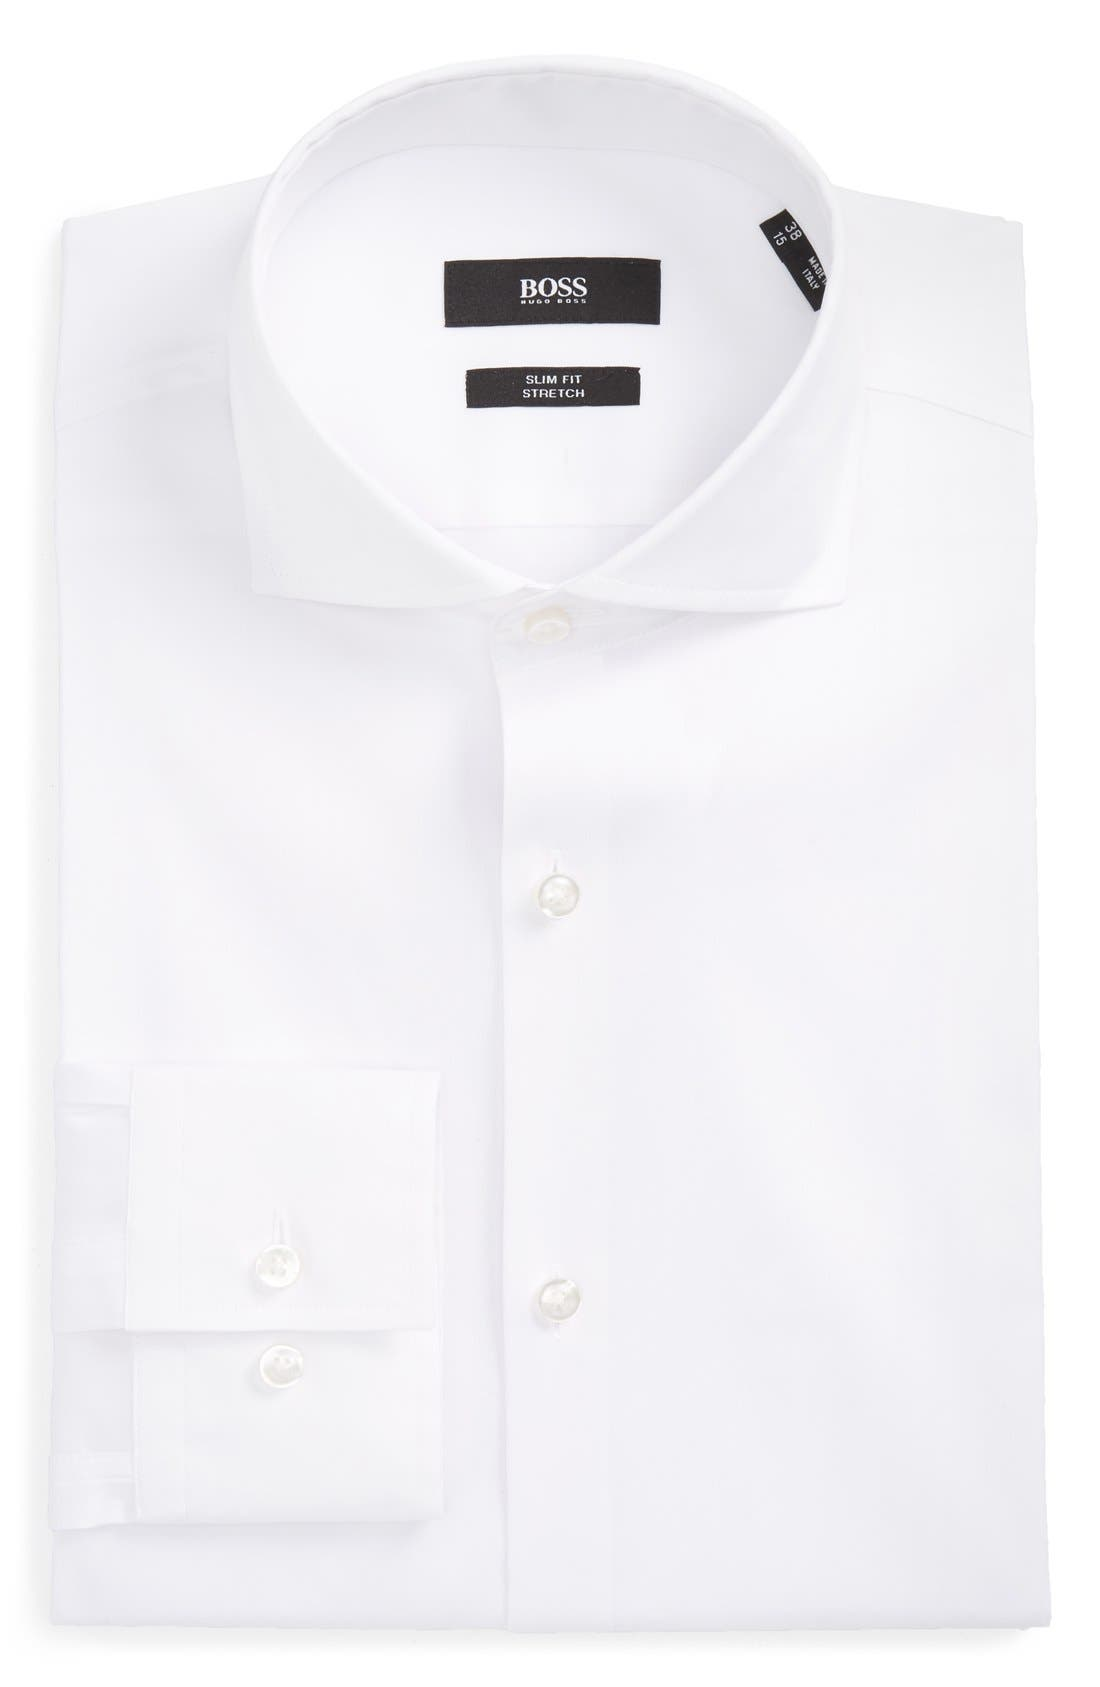 'Jason' Slim Fit Solid Stretch Dress Shirt,                         Main,                         color, White